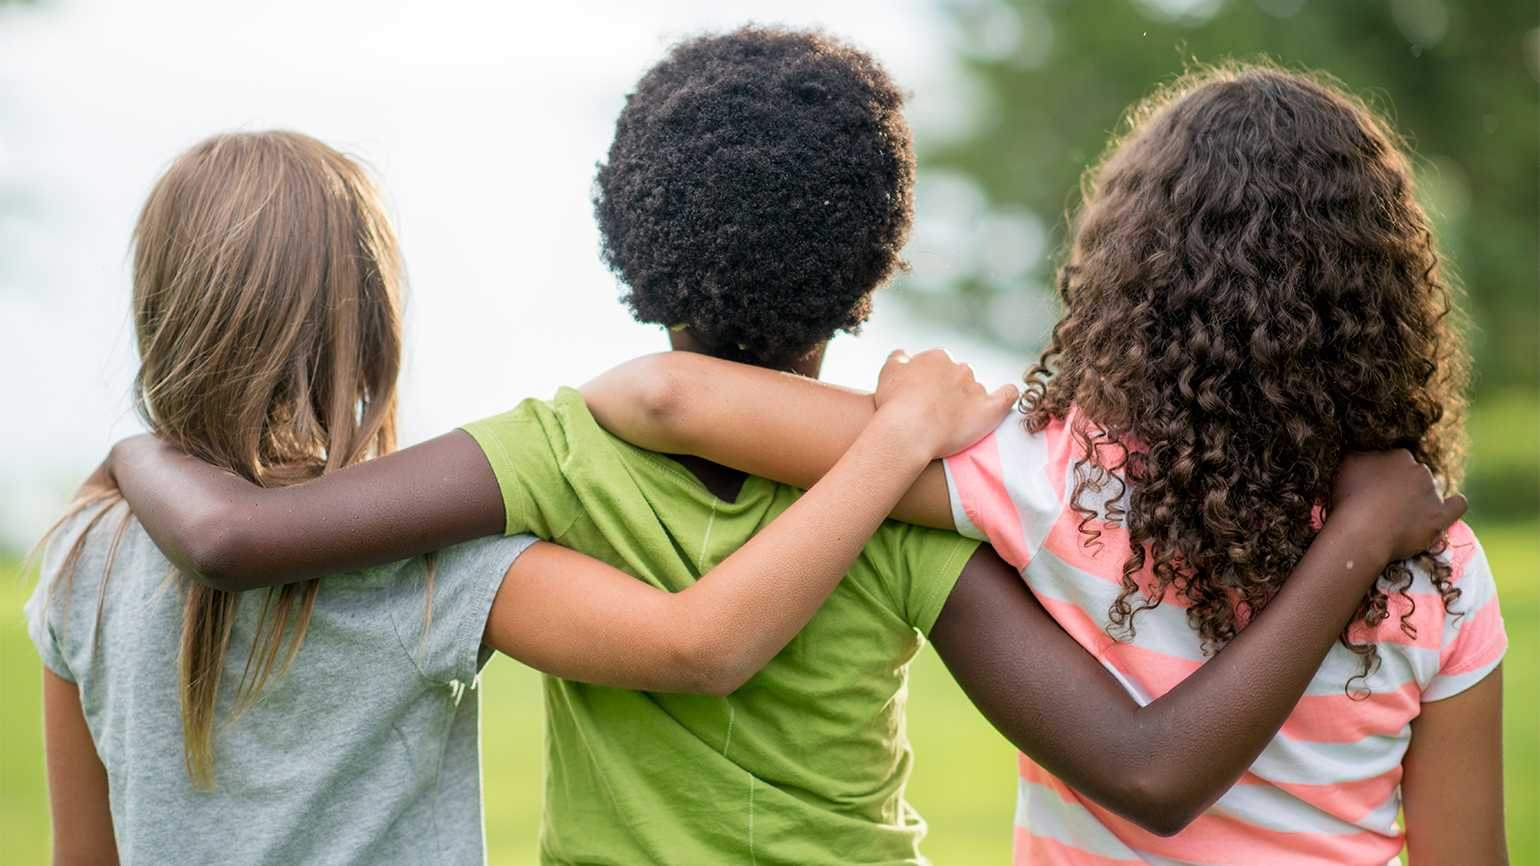 Three children stand, arms draped over one another's shoulders